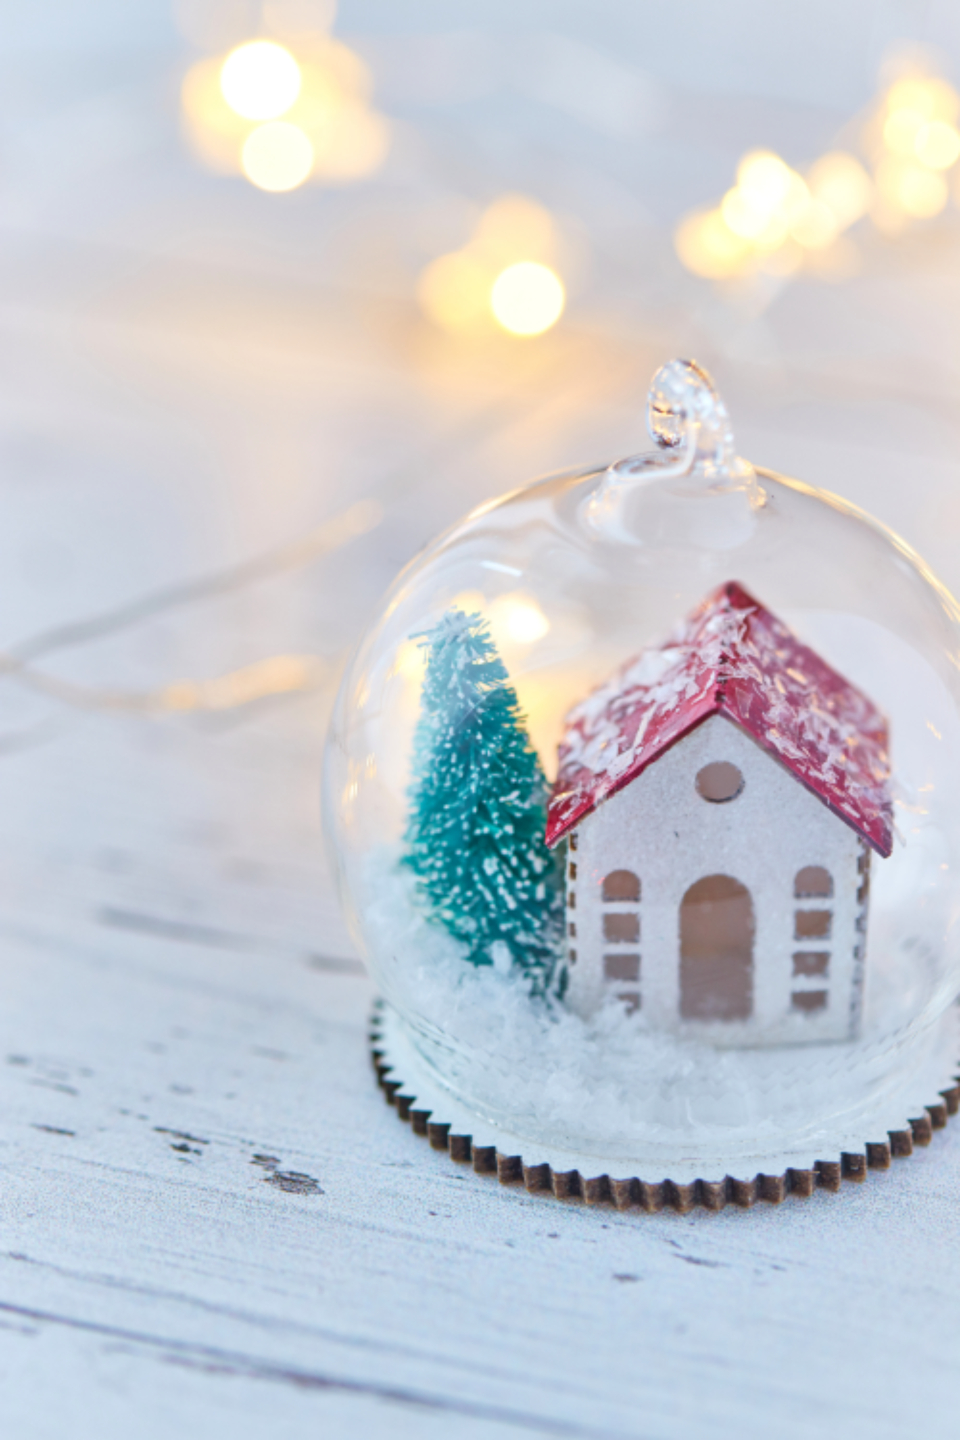 snow globe christmas decoration festive seasonal xmas cabin tree winter sphere holiday gift close up ball bauble